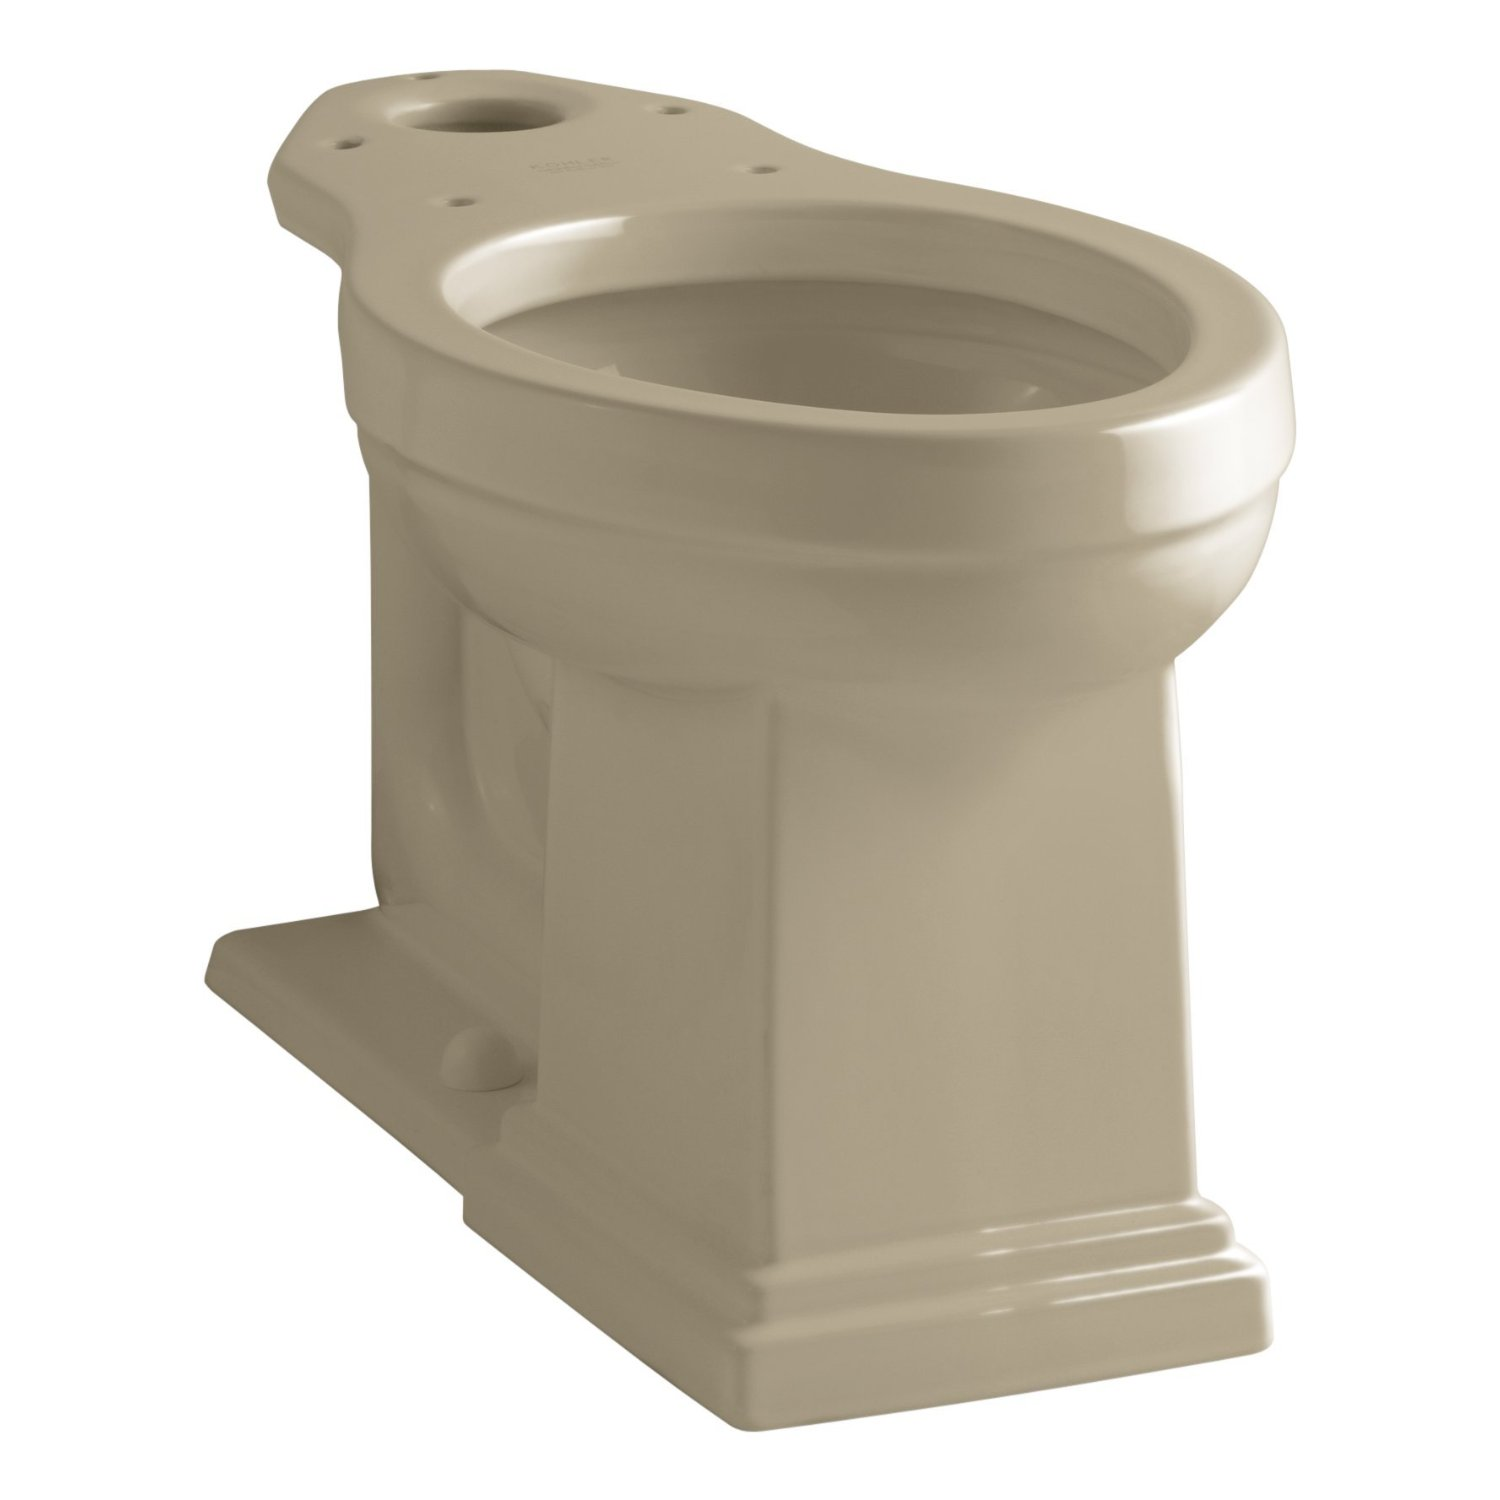 Kohler K 4799 0 Tresham Comfort Height Elongated Bowl